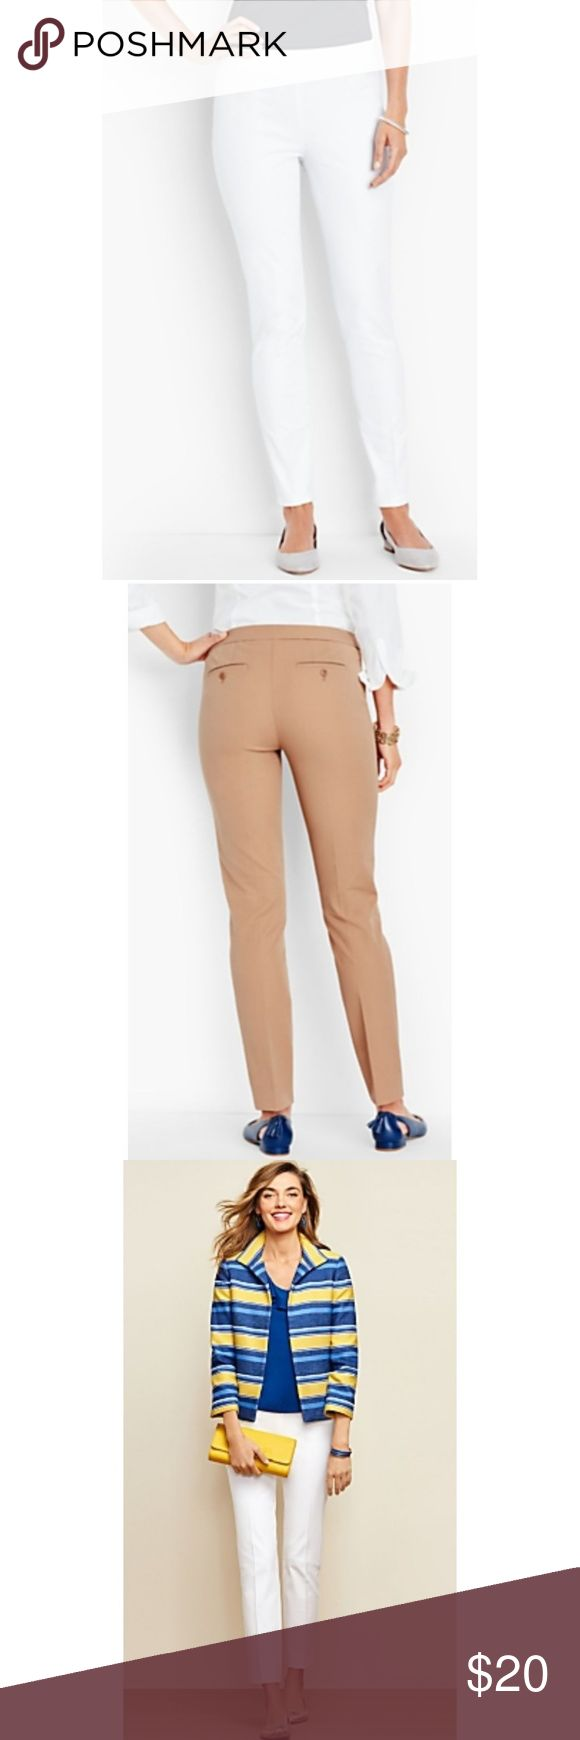 """Talbots Chatham ankle white petite pants Compact bi-stretch cotton and tailored in a slim legged ankle silhouette. Side zip. Two small closed pockets in front and two back welt buttons.  Pre-owned. In Great Condition!! No rips, stains or tears! Inseam: 26 1/2"""" Fabric: 52% cotton, 42% rayon, 6% spandex Talbots Pants Ankle & Cropped"""